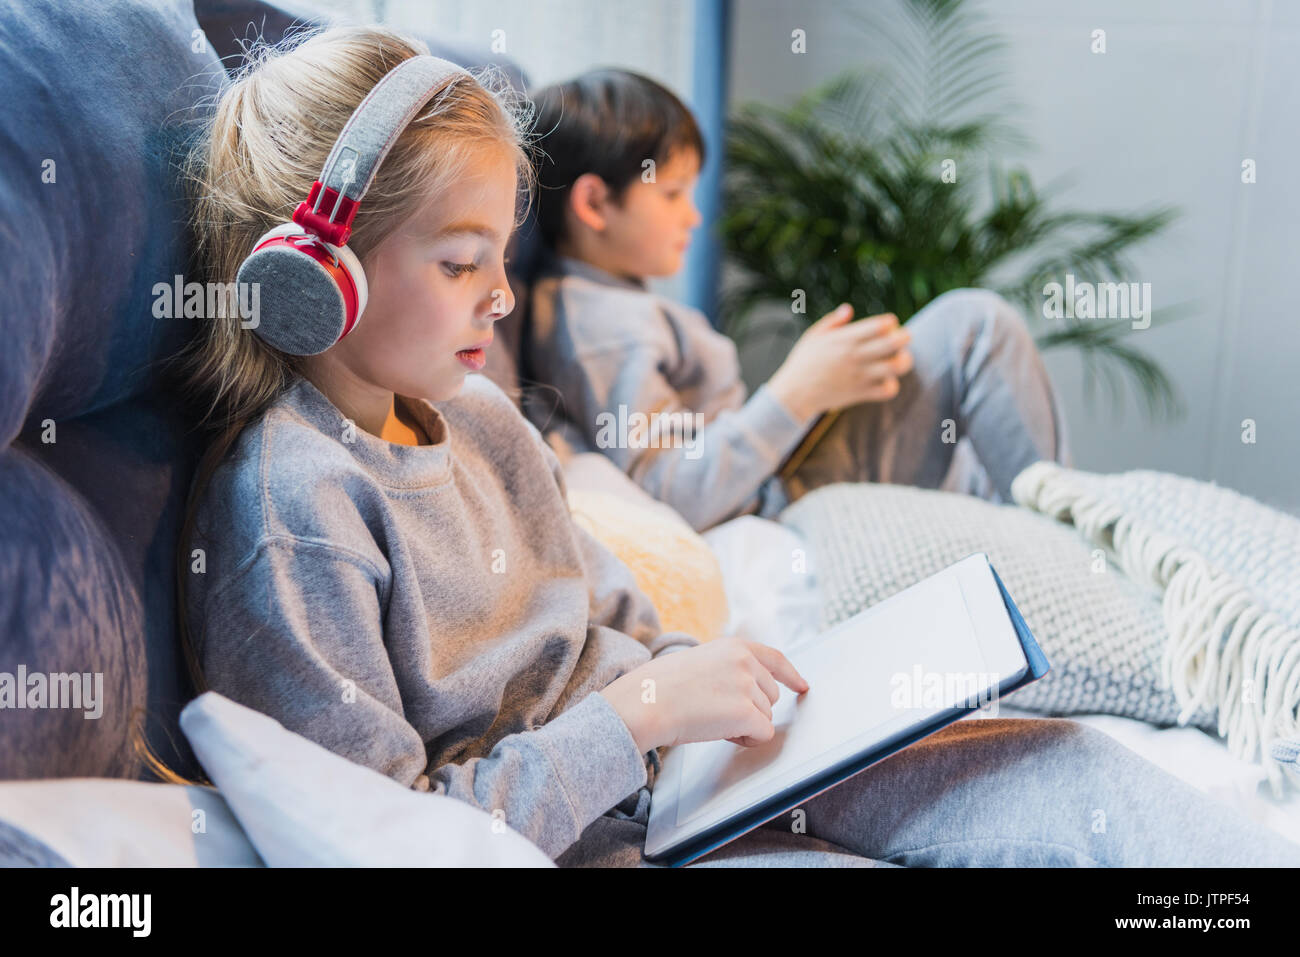 side view of focused girl in headphones and little boy using digital tablets - Stock Image